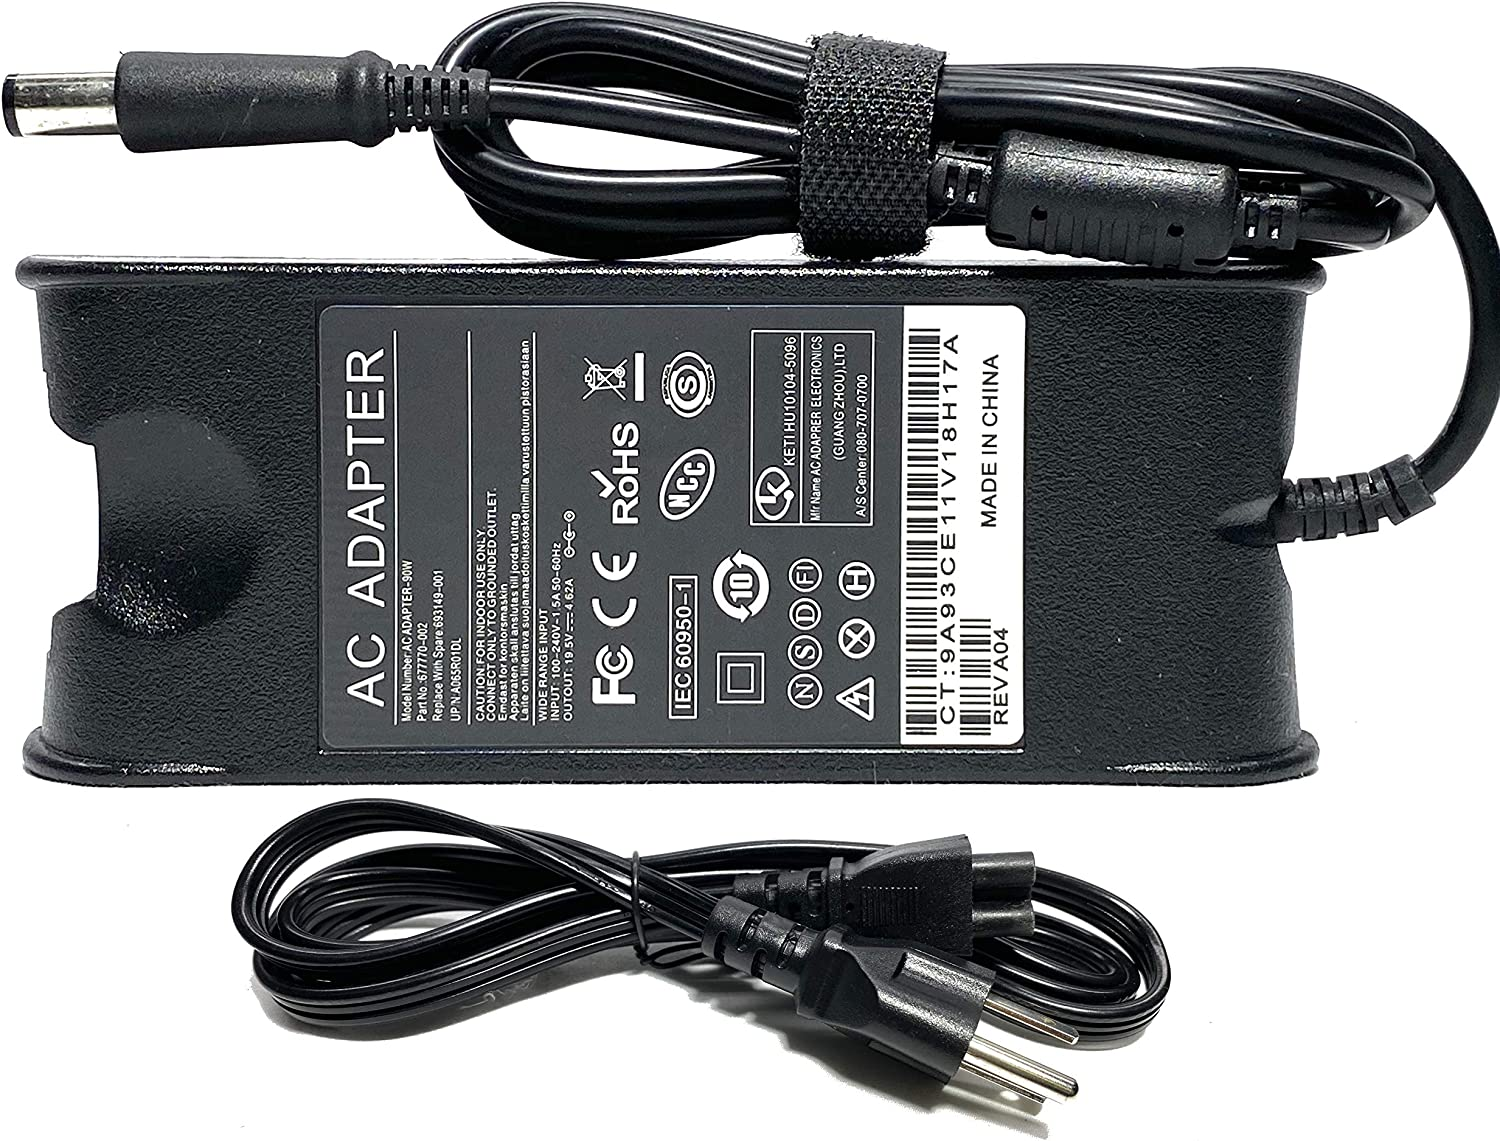 AXOSIS Charger AC Adapter for Dell Latitude E4300 E4310 E5400 E5410 E5500 E5510 E6420 E6400 Dell Inspiron 11 13 14z 14R 15R 17 fits P/N PA10 PA-1900-02D 19.5V 4.62A 7.4x5.0MM